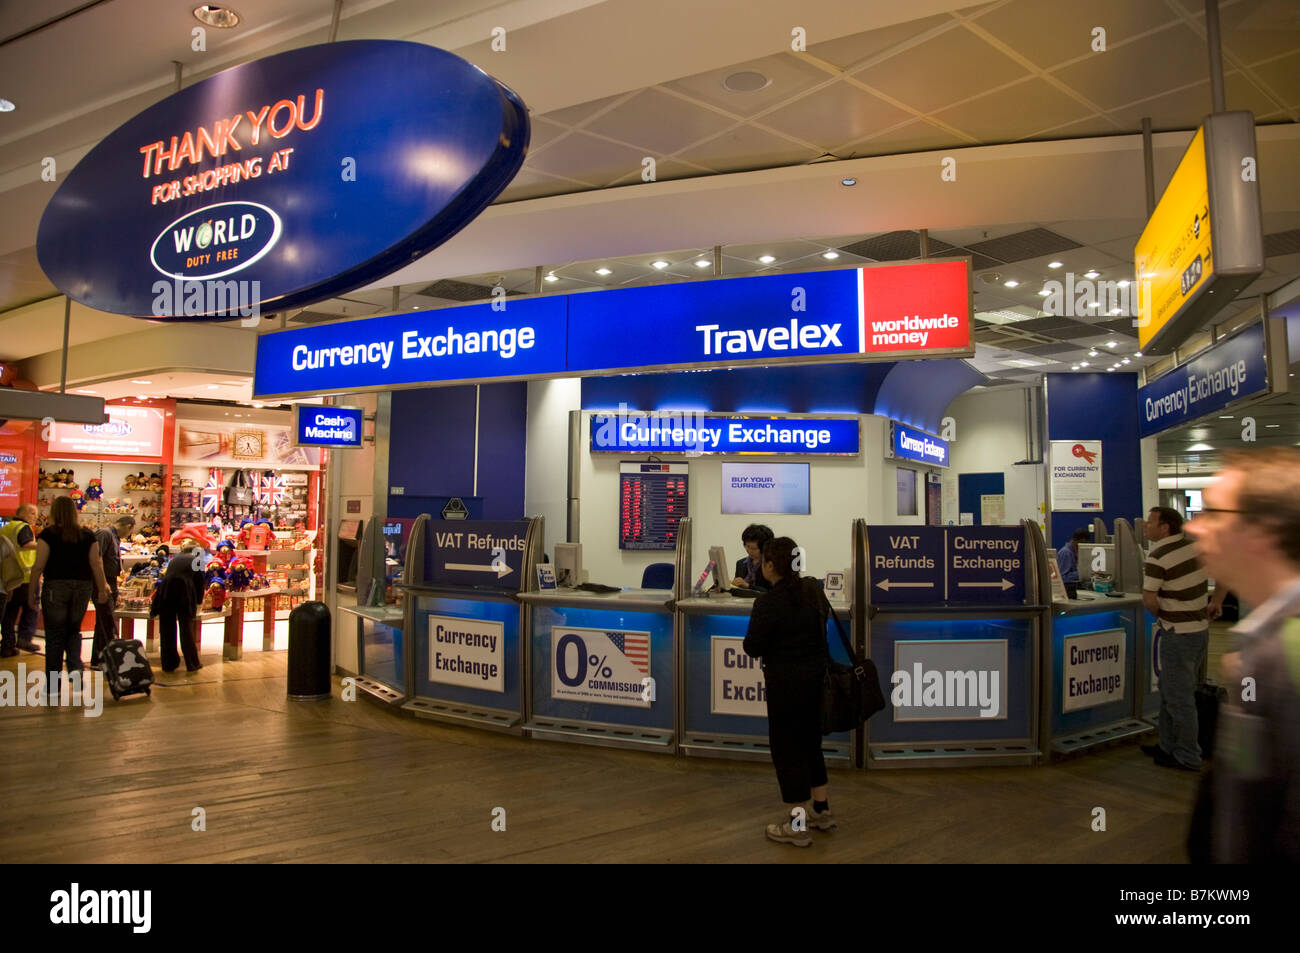 Bureau de change office operated by travelex at heathrow airport stock photo 21950217 alamy - Gatwick airport bureau de change ...